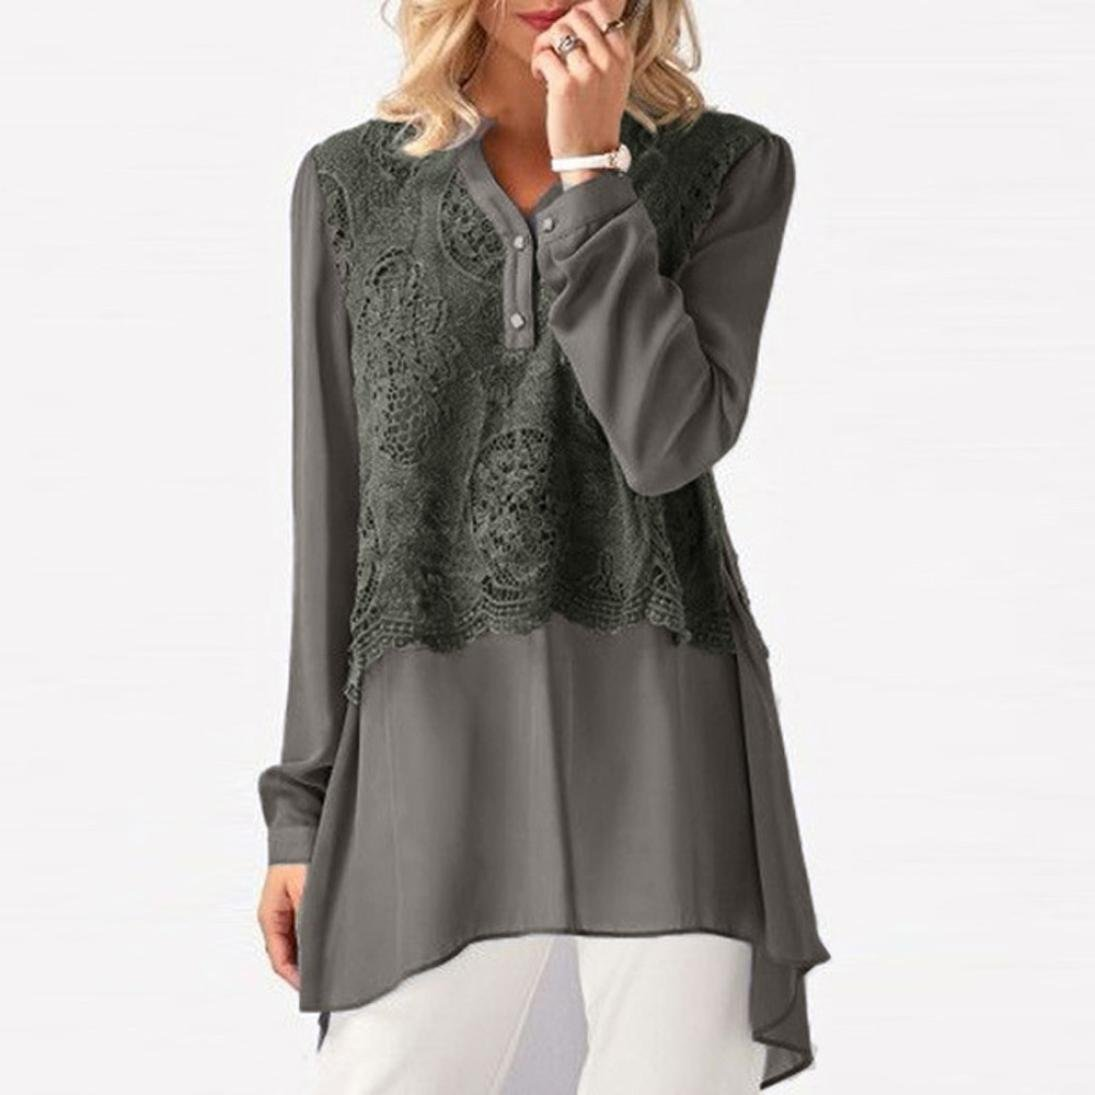 FANOUD Women Casual Solid Lace Patchwork Long Sleeve Chiffon Layered Tops Shirts (M)